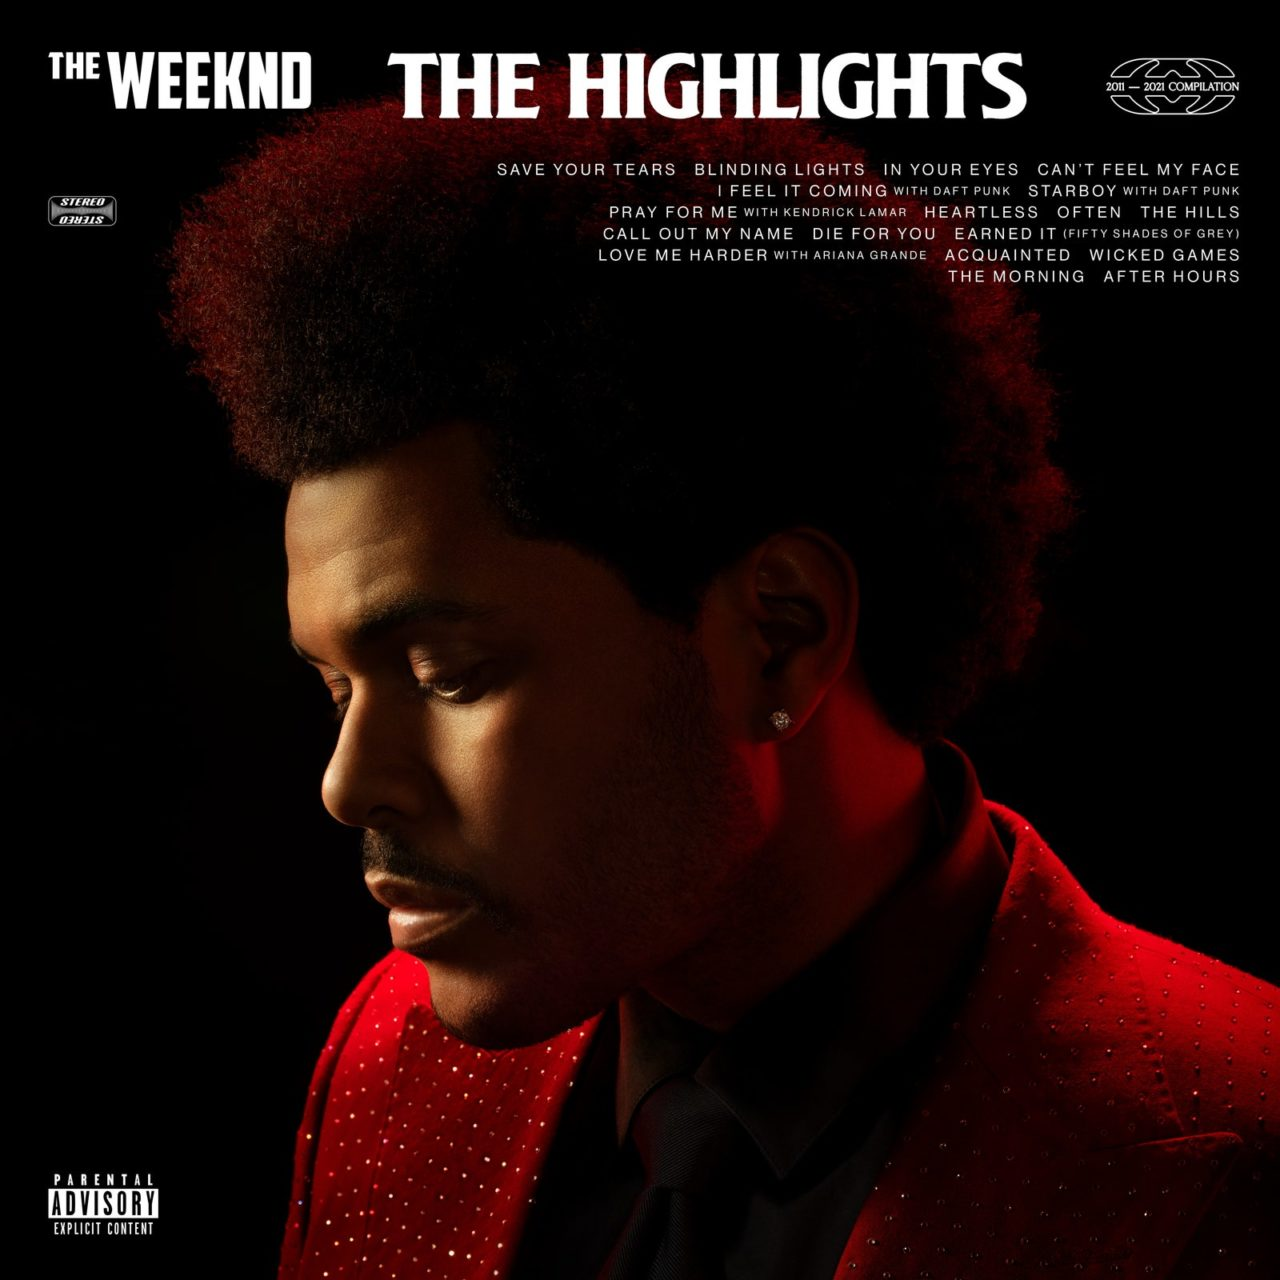 The-Weeknd-The-Highlights-1614109721